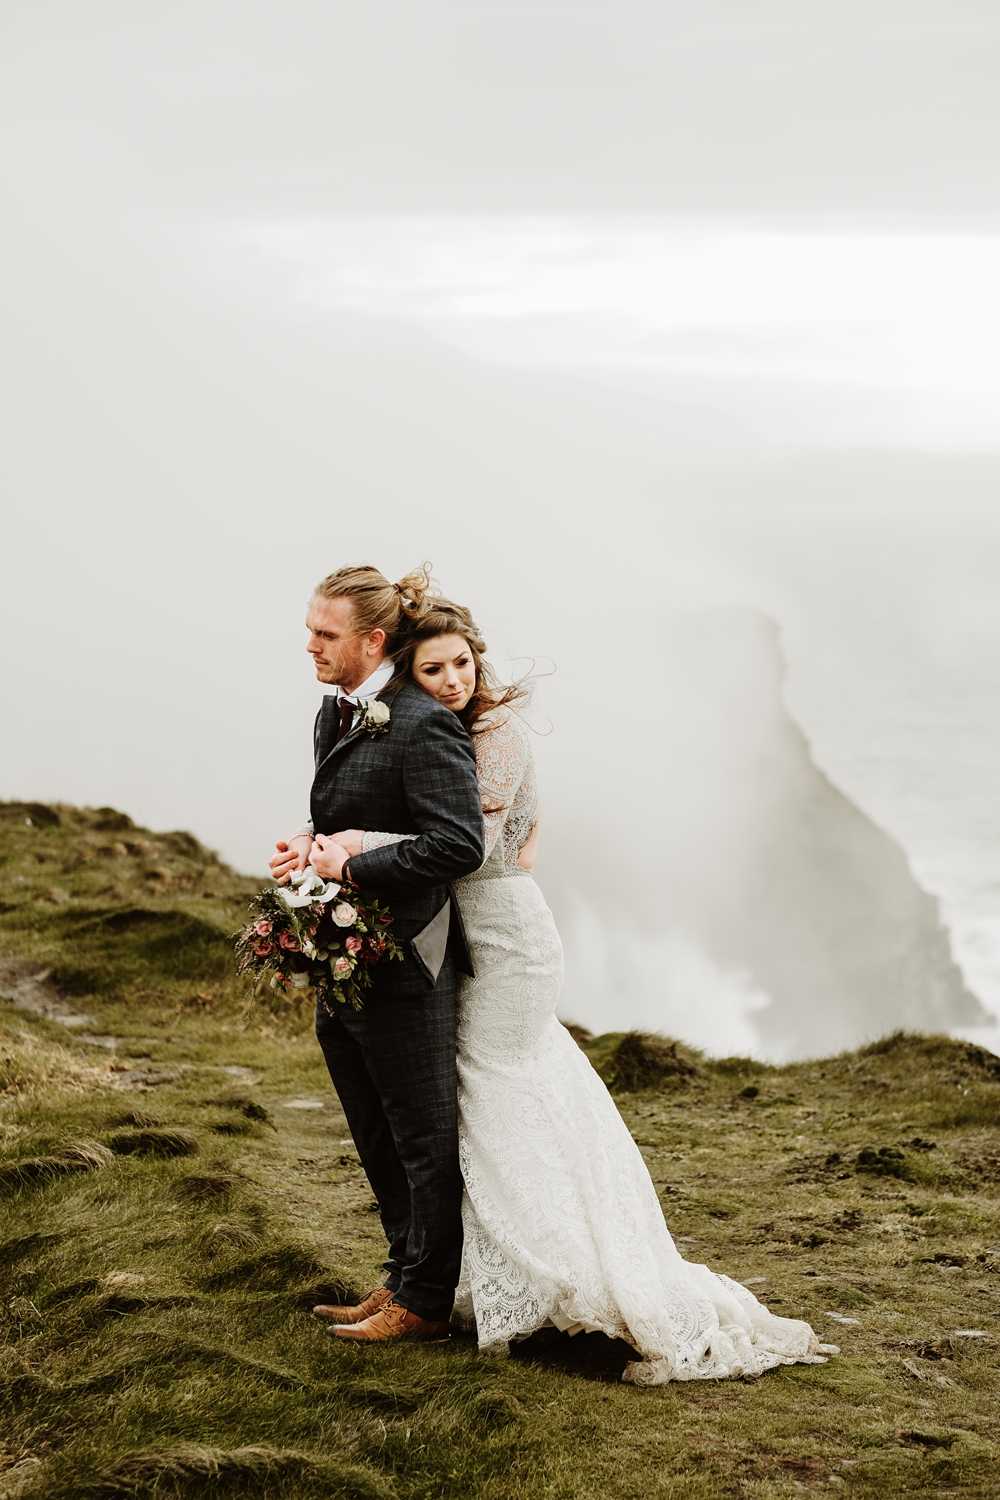 Europe Elopement Photographer Wild Connections Photography in Ireland at the Cliffs of Moher